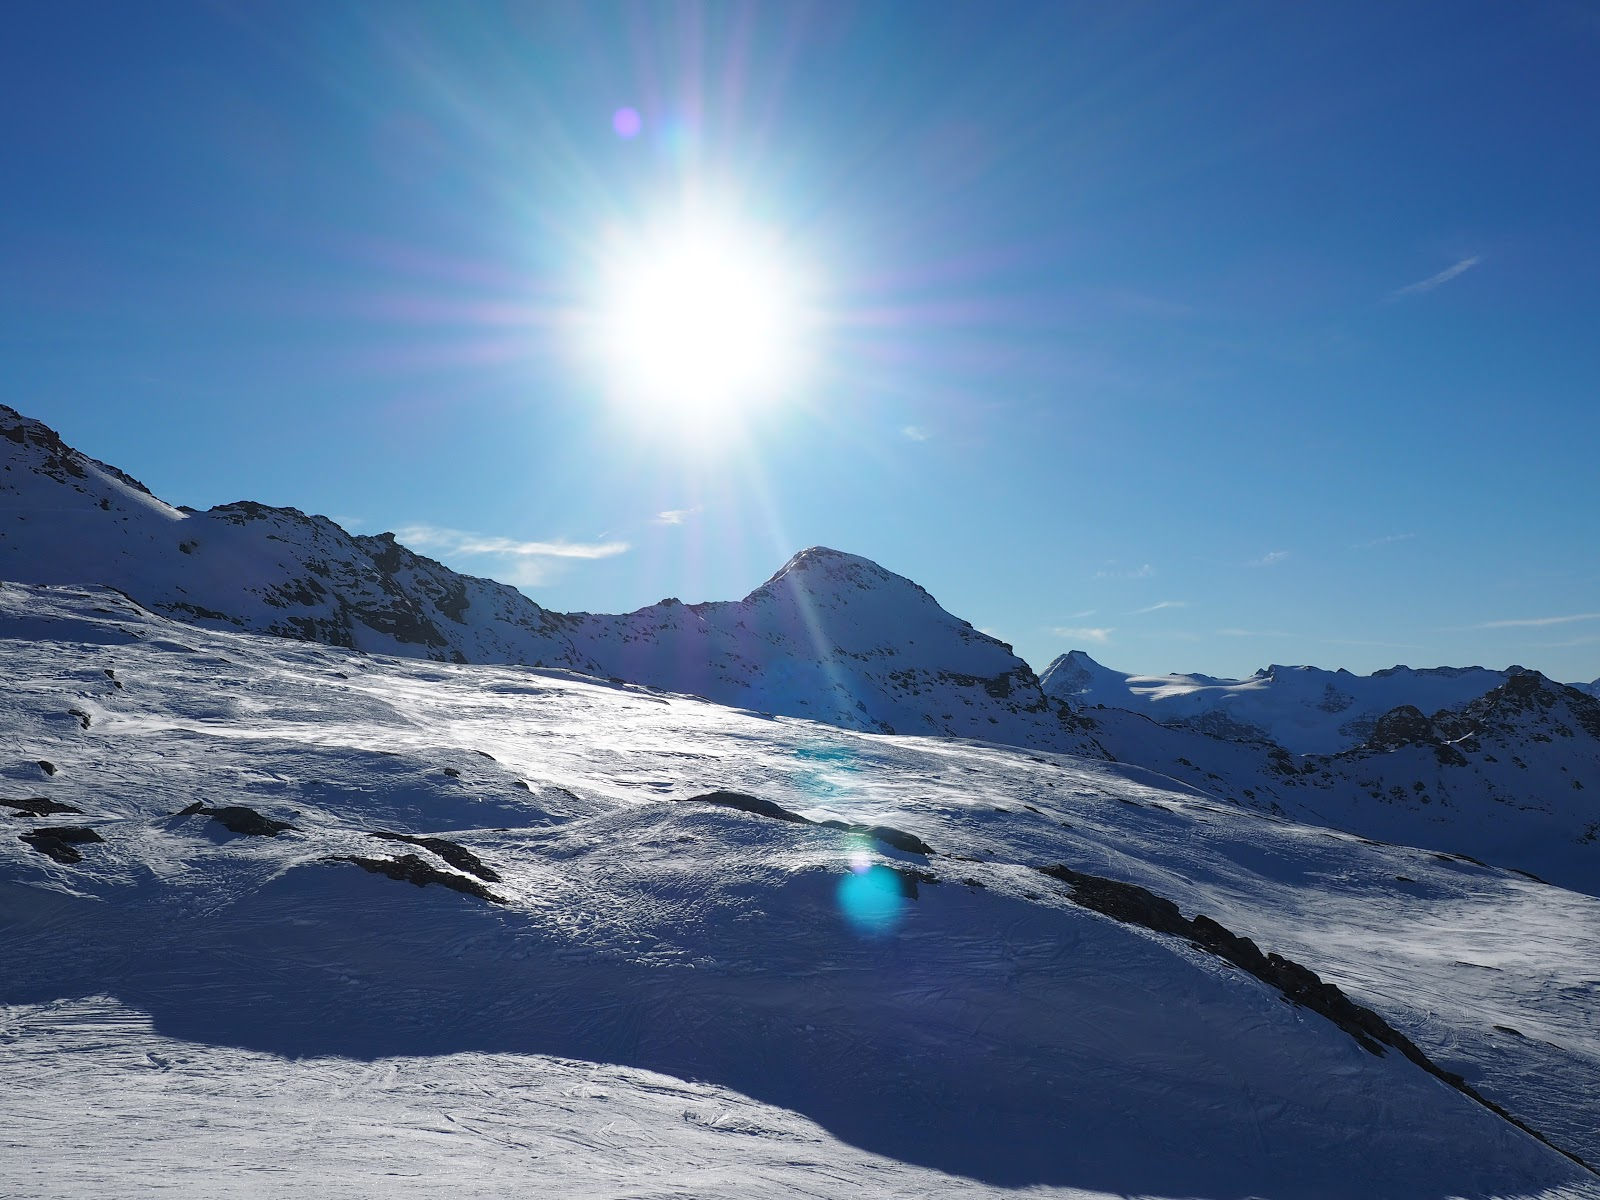 top of a snow topped mountain in Val d'isere, France